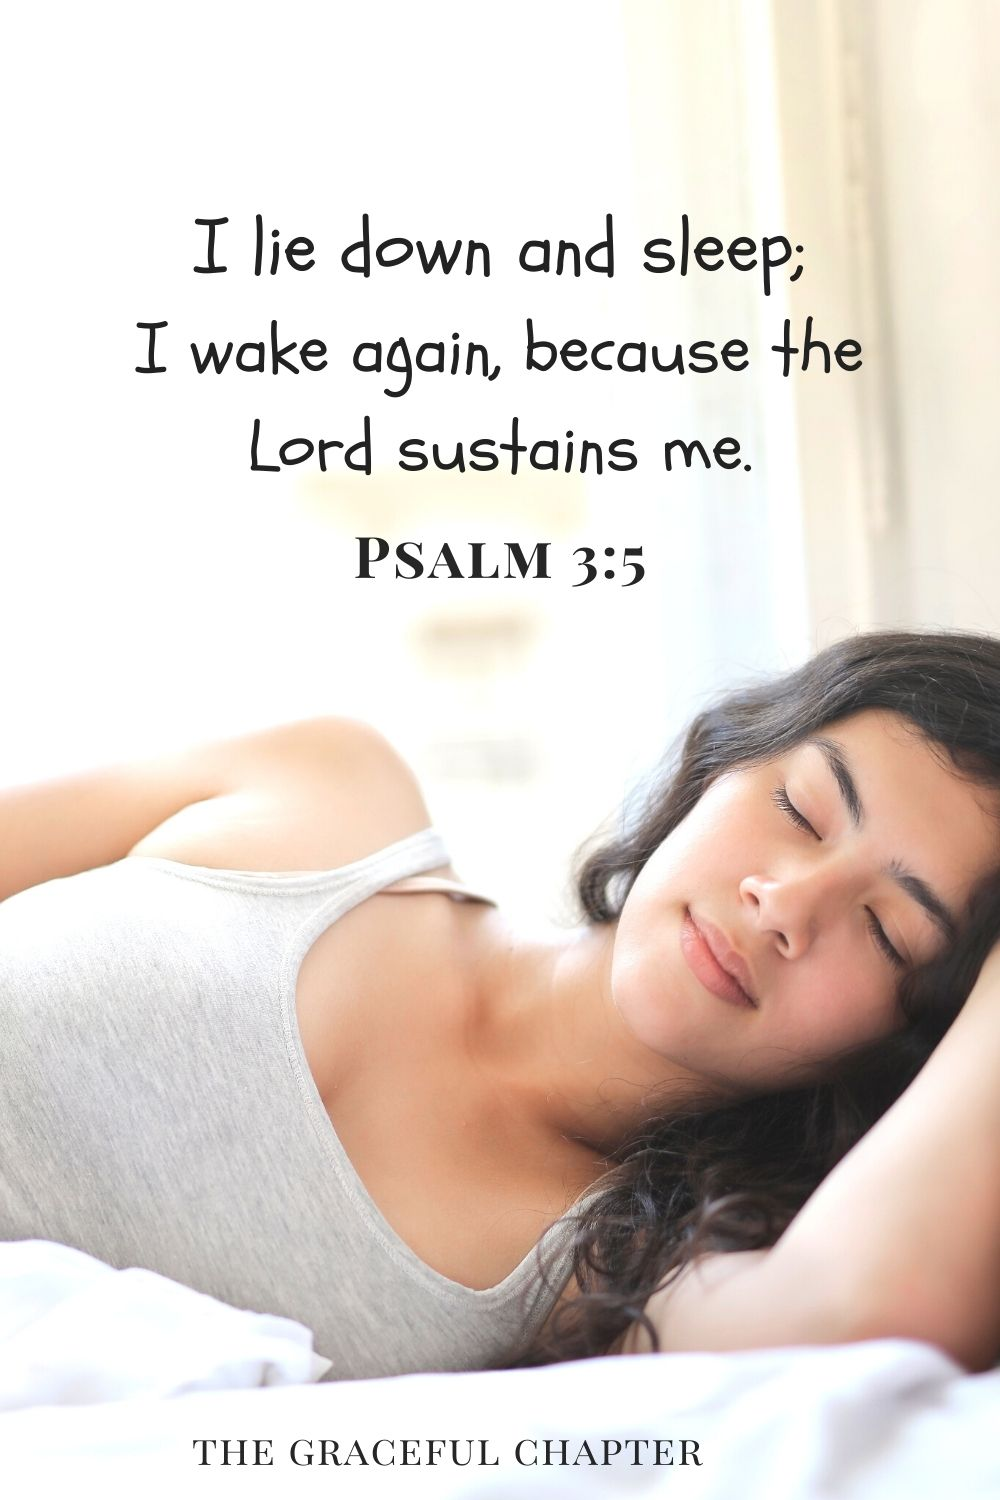 I lie down and sleep; I wake again, because the Lord sustains me. Psalm 3:5